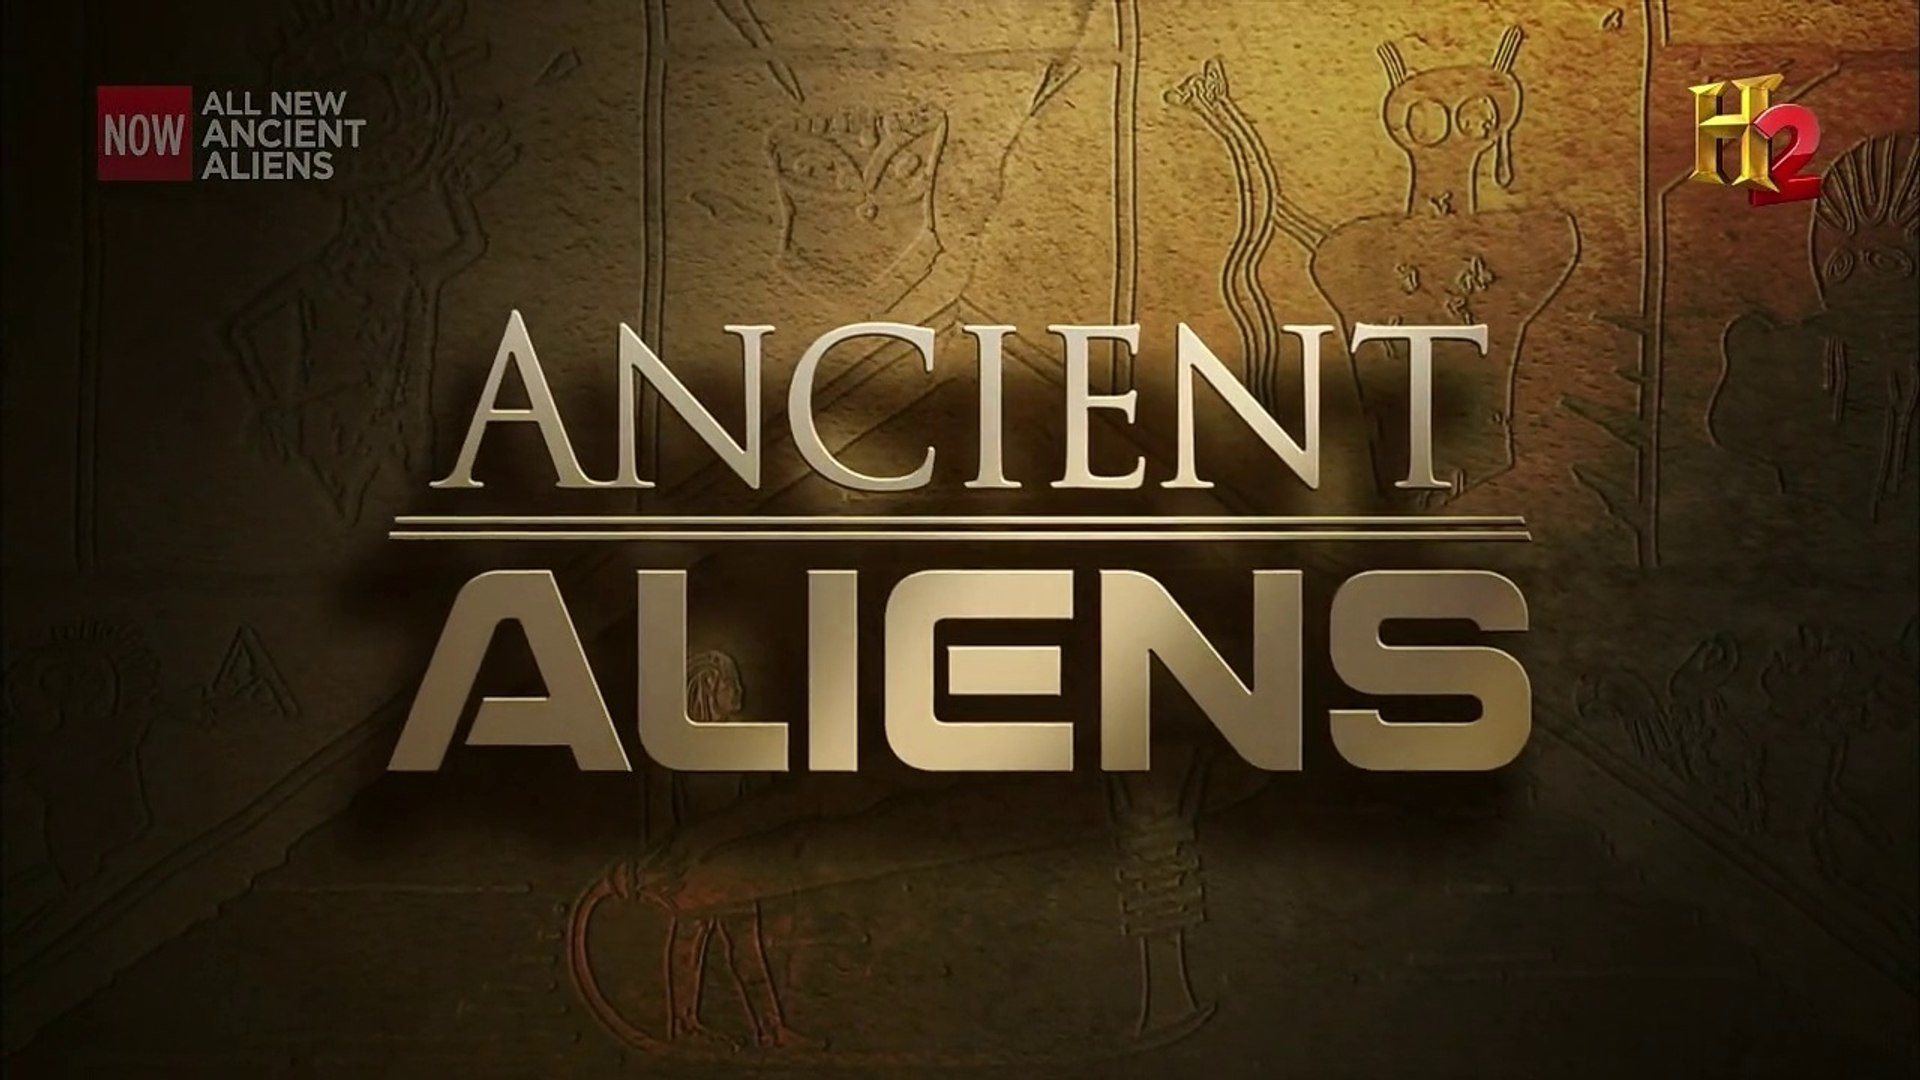 1920x1080 ANCIENT ALIENS: ALIENS AND COVER UPS - Alien UFO Paranormal (full  documentary episode) - video dailymotion